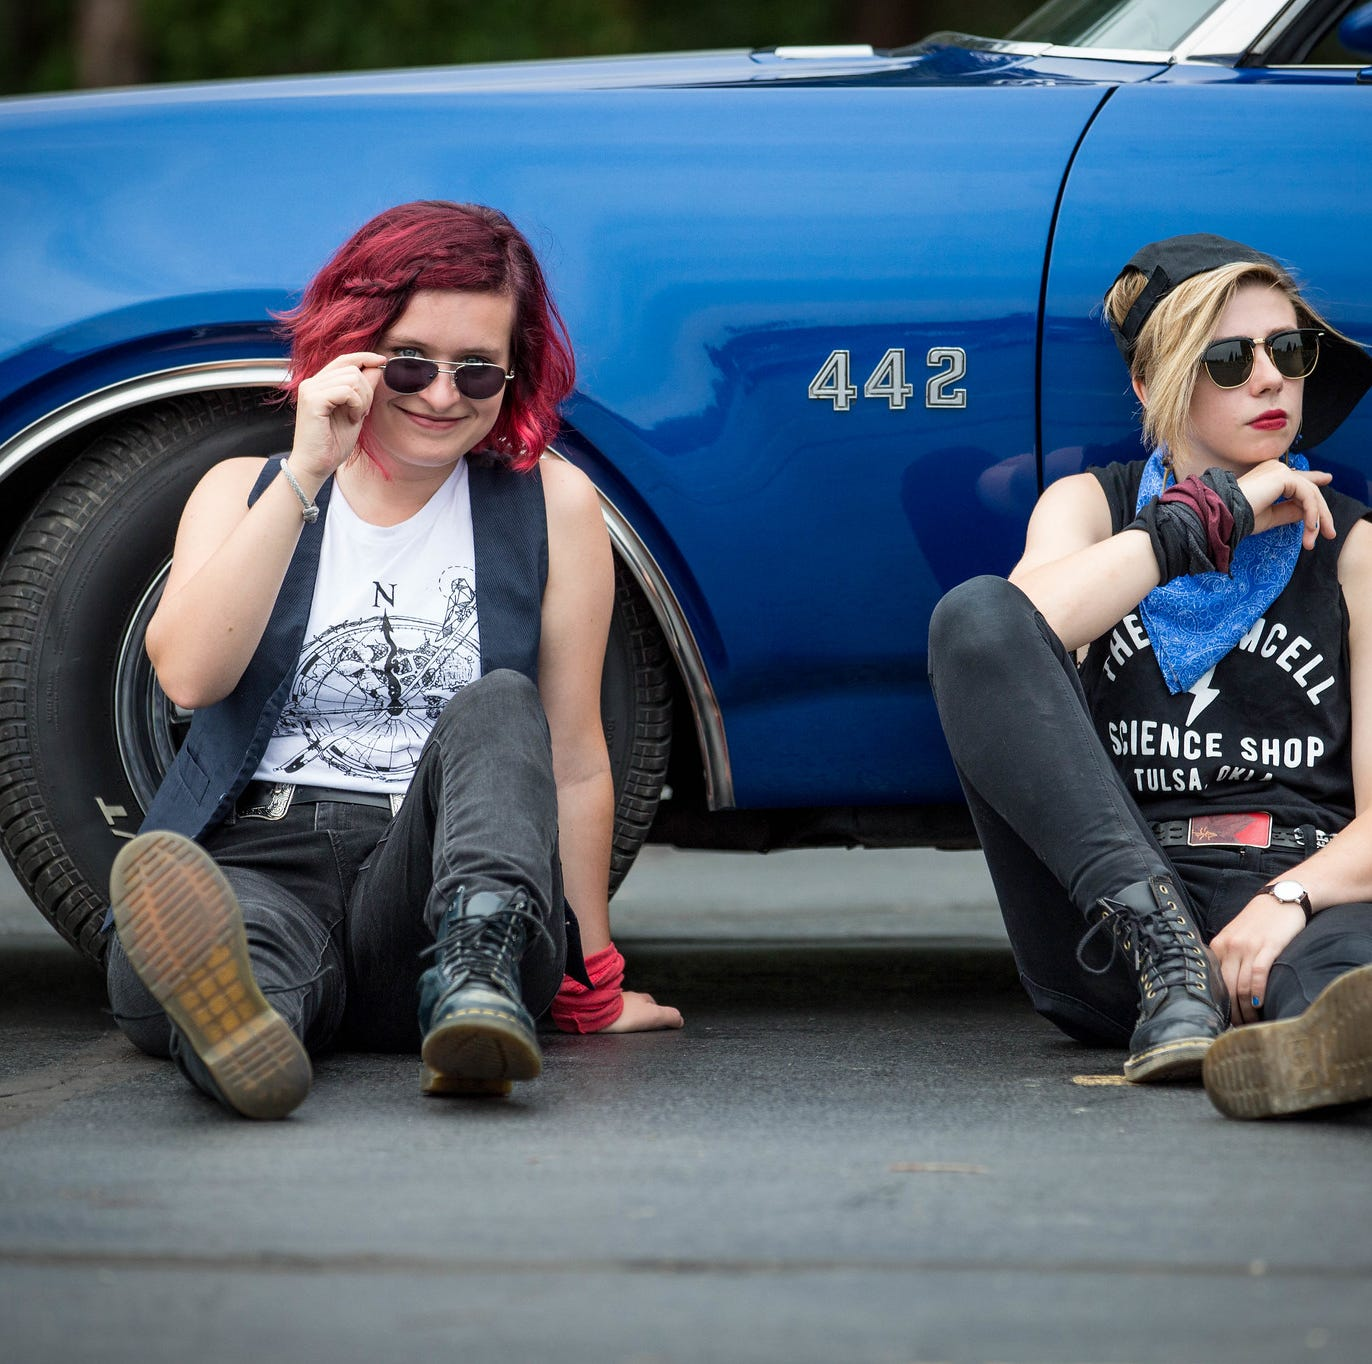 The Accidentals aim to flex their rock muscles at new Detroit festival